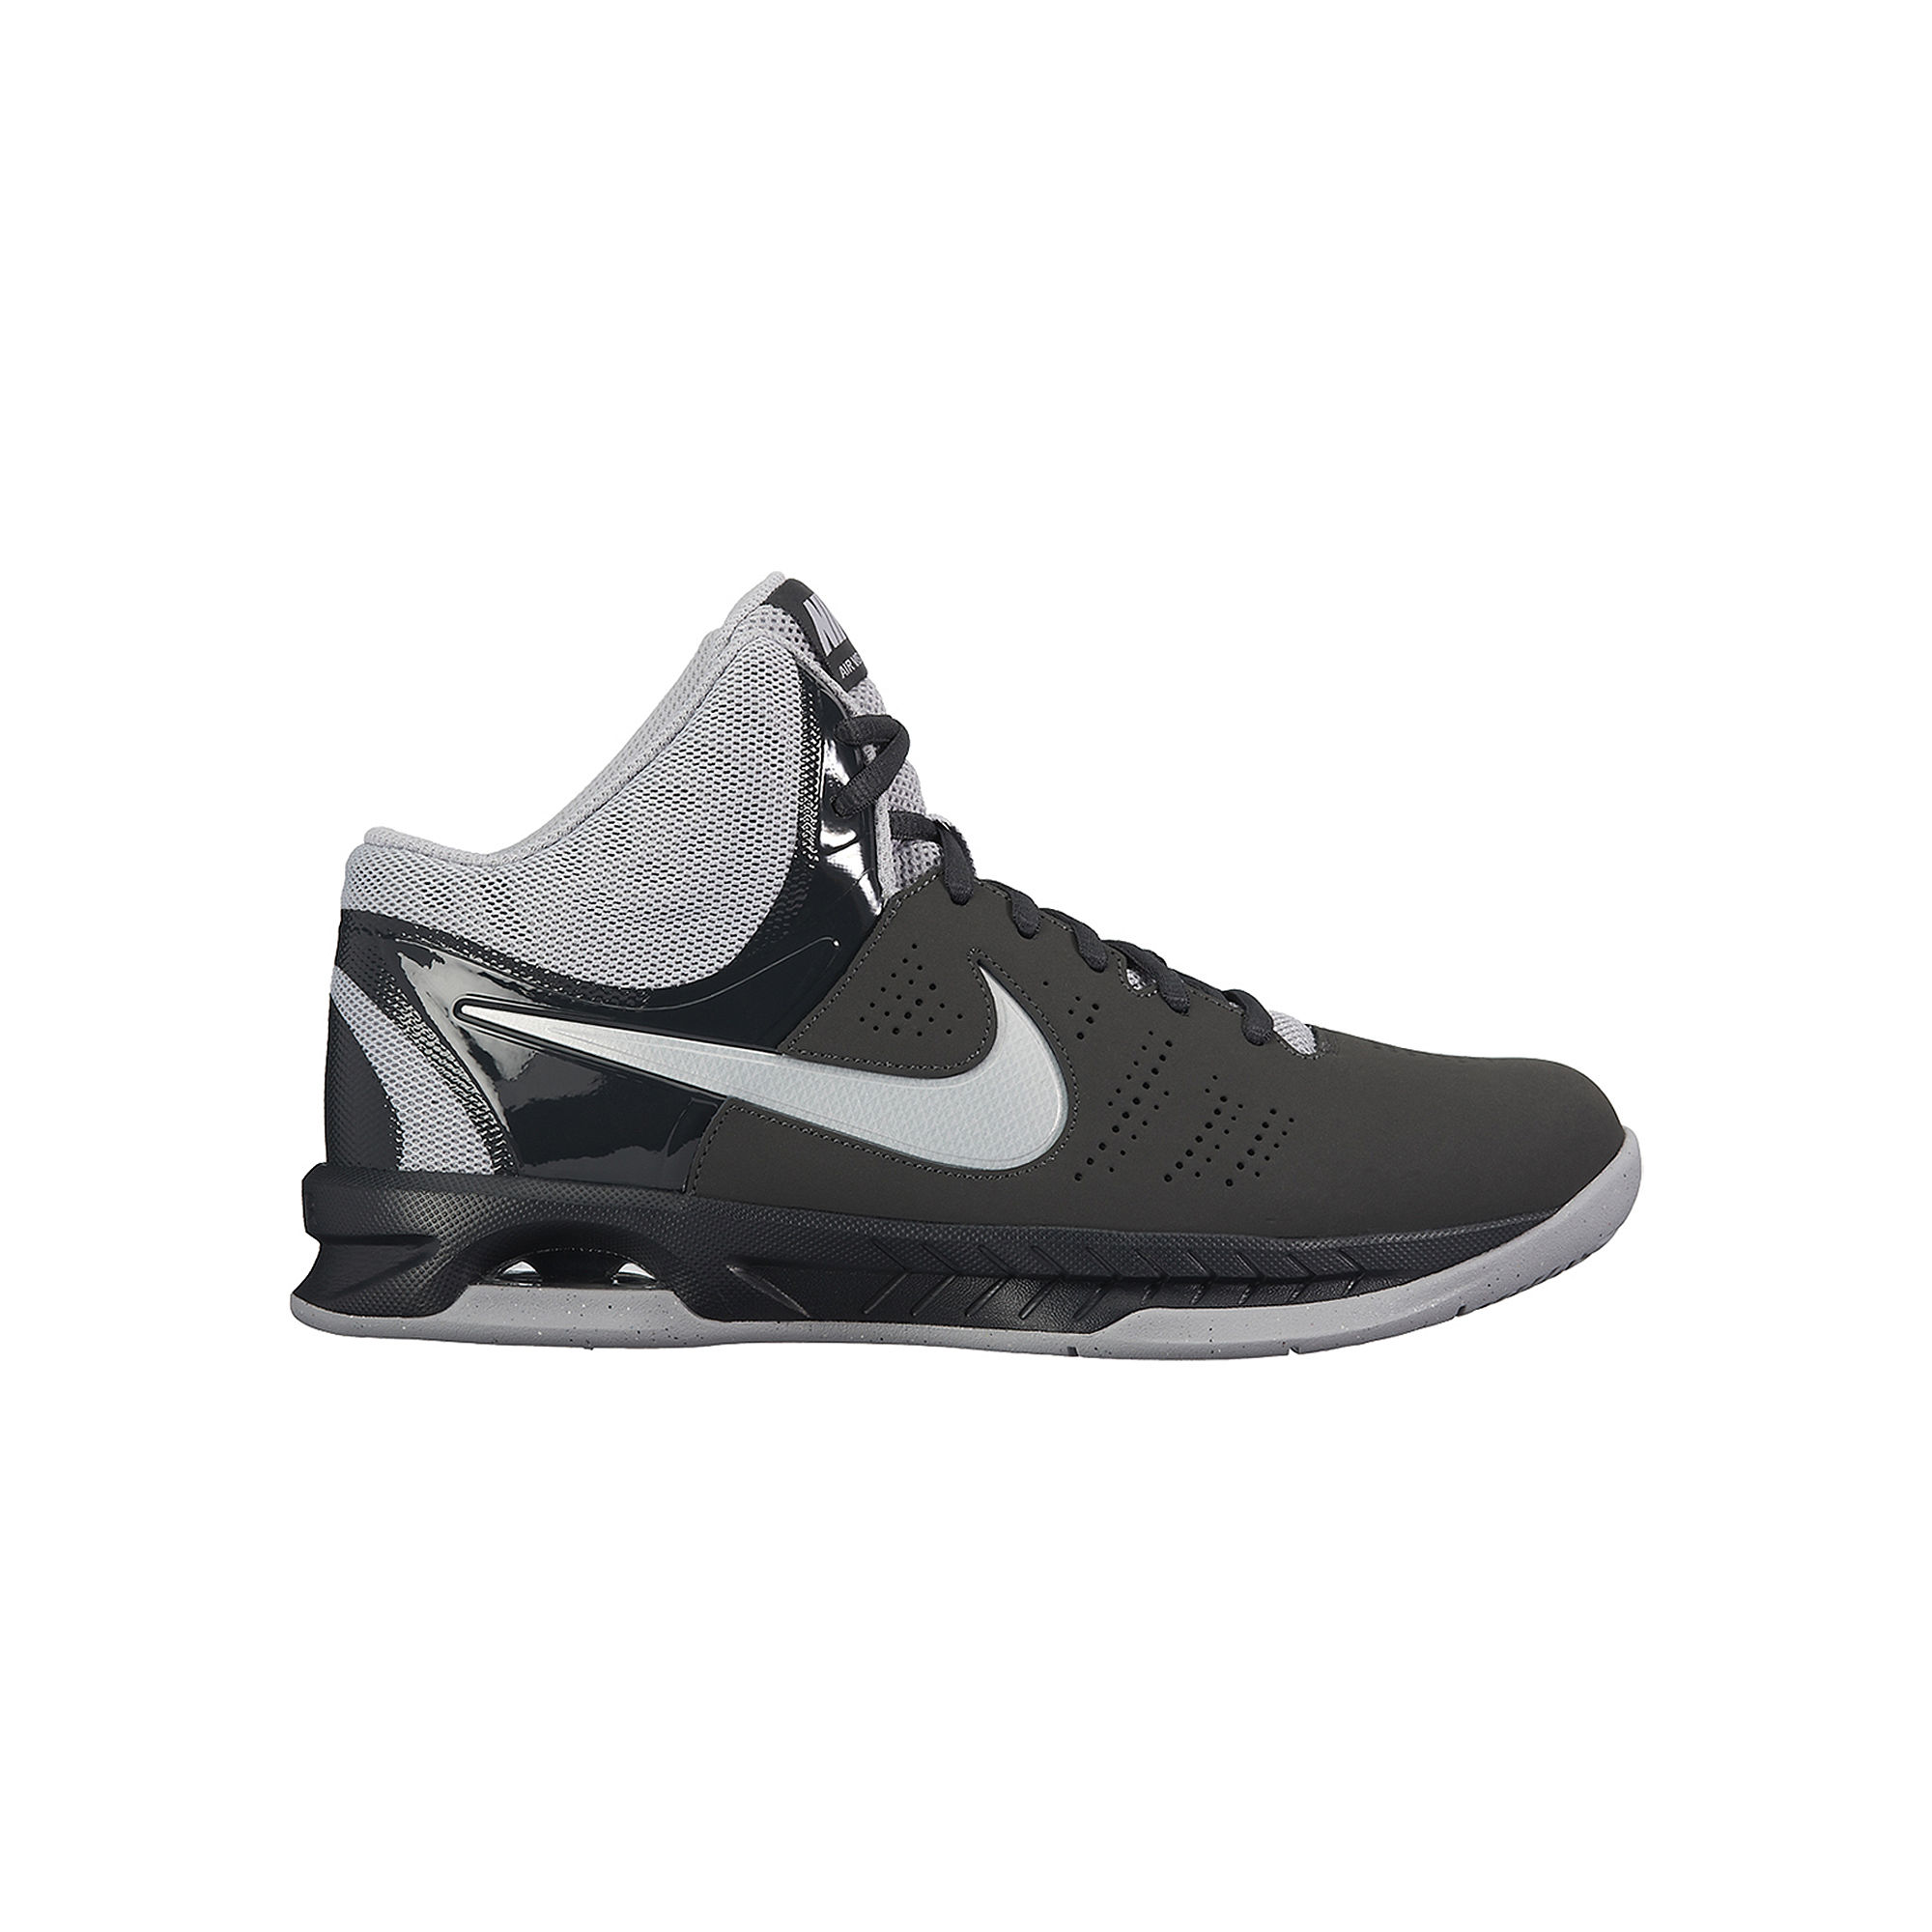 8f594e1f5488 ... UPC 888409582118 product image for Nike Air Visi Pro VI Mens Basketball  Shoes